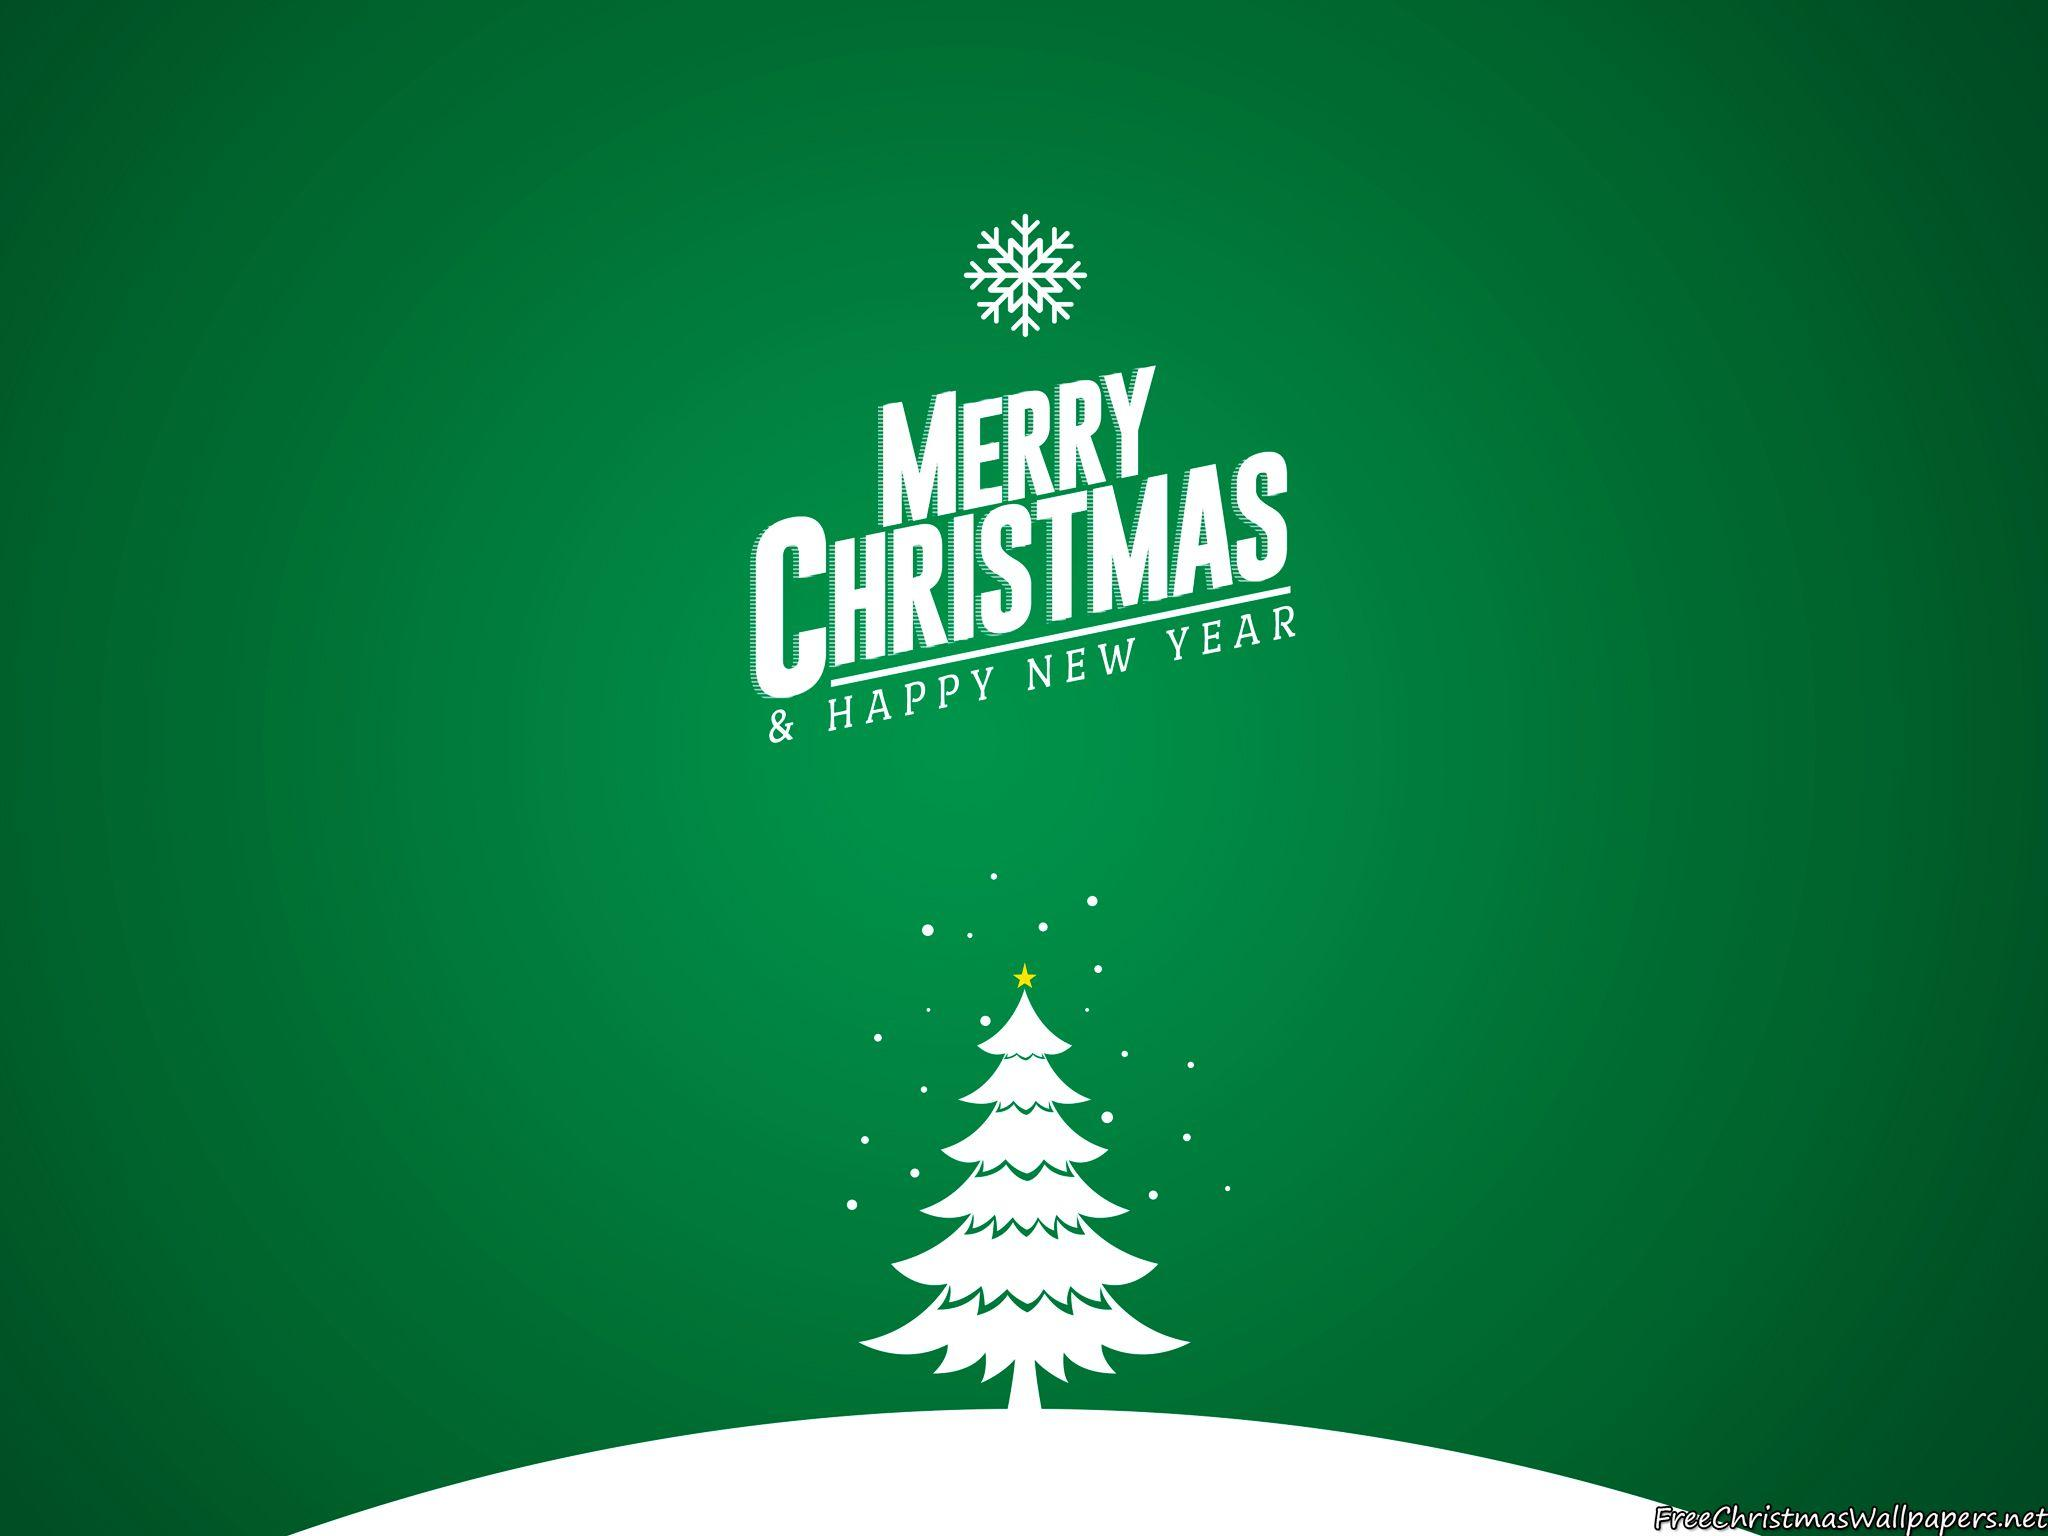 Merry-Christmas-Tree-Card-wallpaper-wp1207500 - 5dwallpaper.com